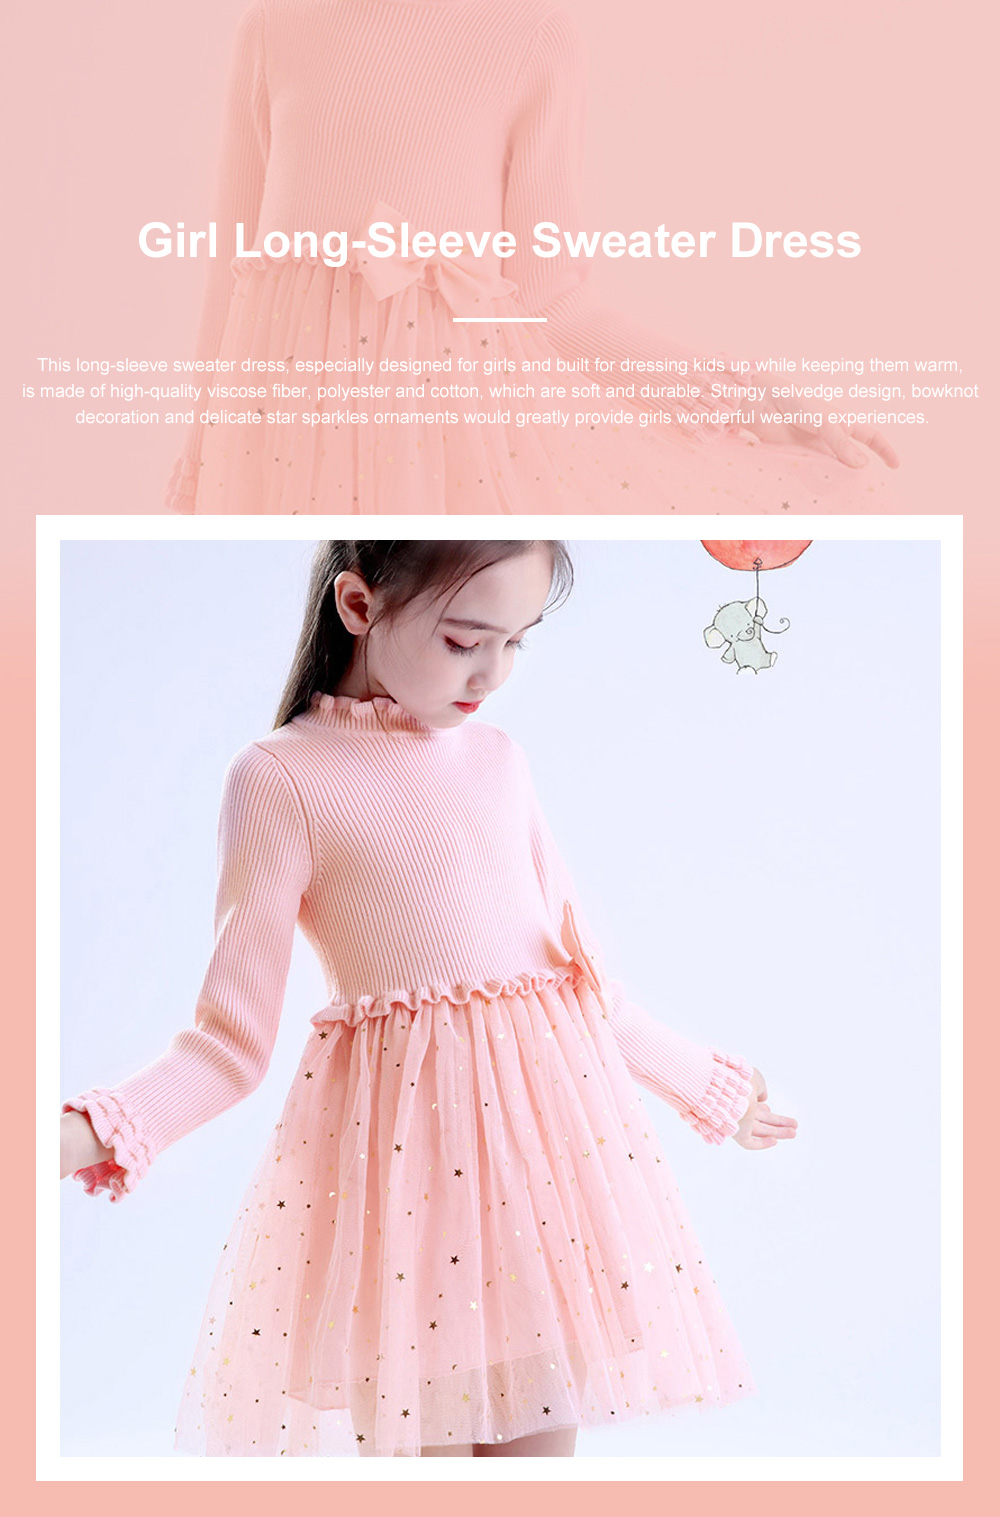 Fancy Elegant Winter Spring Autumn Children Girls Long-sleeve Sweater Dress Veil Princess Skirt with Star Sparkle Bowknot Decoration 0